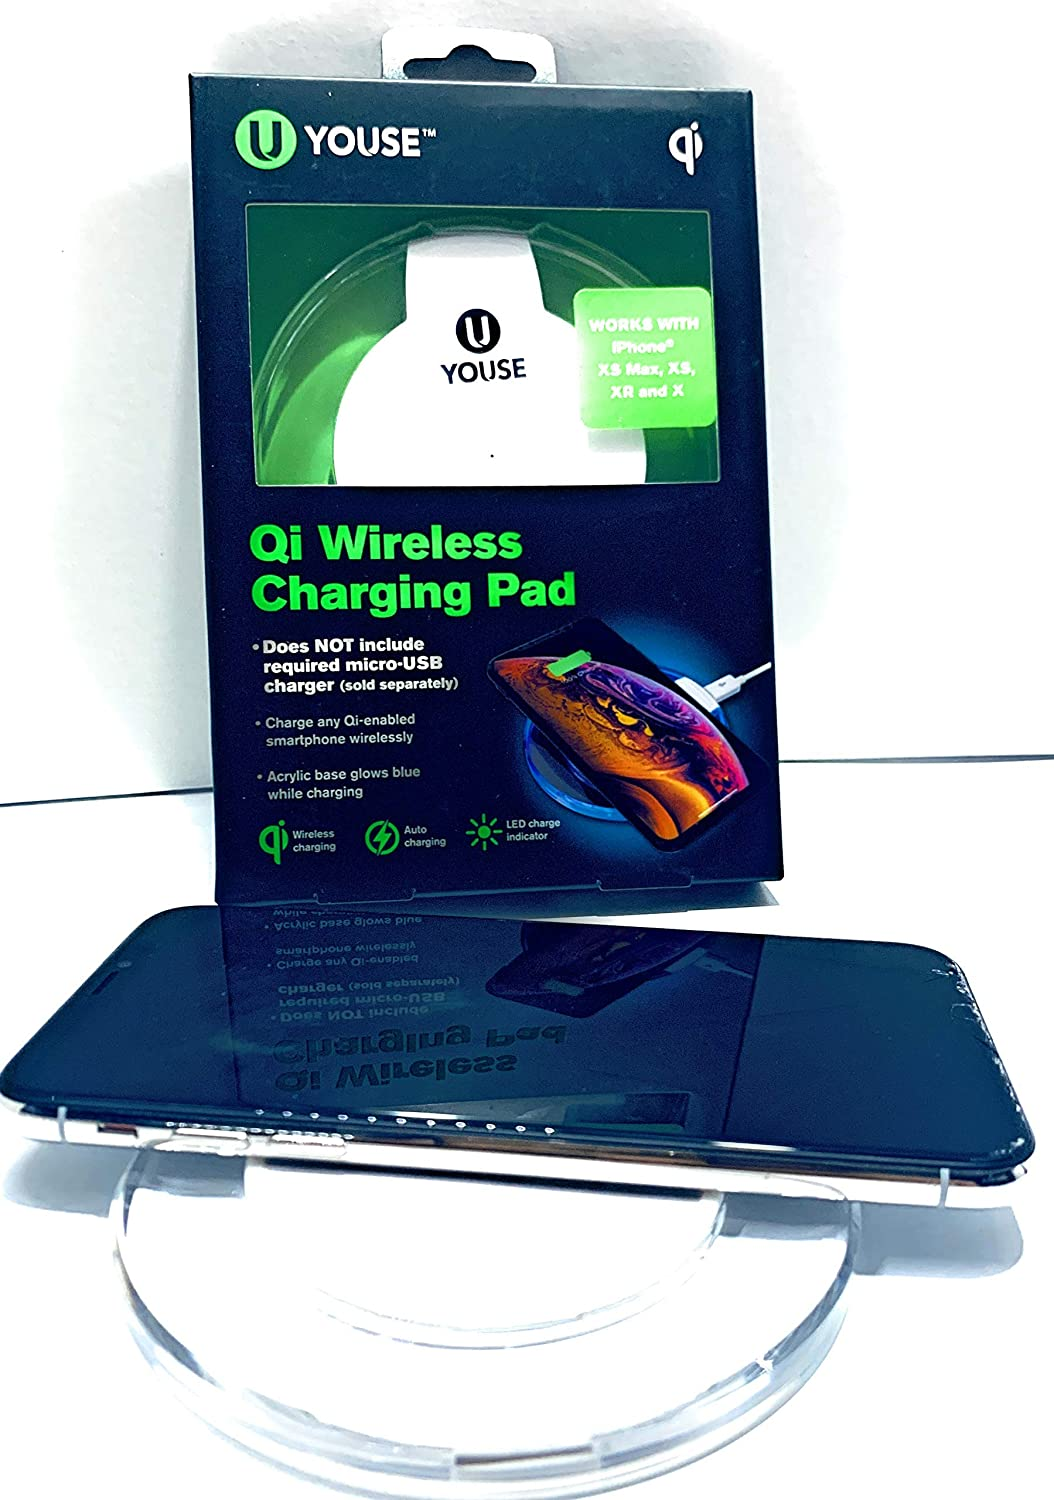 YOUSE 2.4 Amp Wireless Charging Pad for ANY Qi-enabled smartphone and 5 Foot 2.4 AMP Fix chord Wall Charger